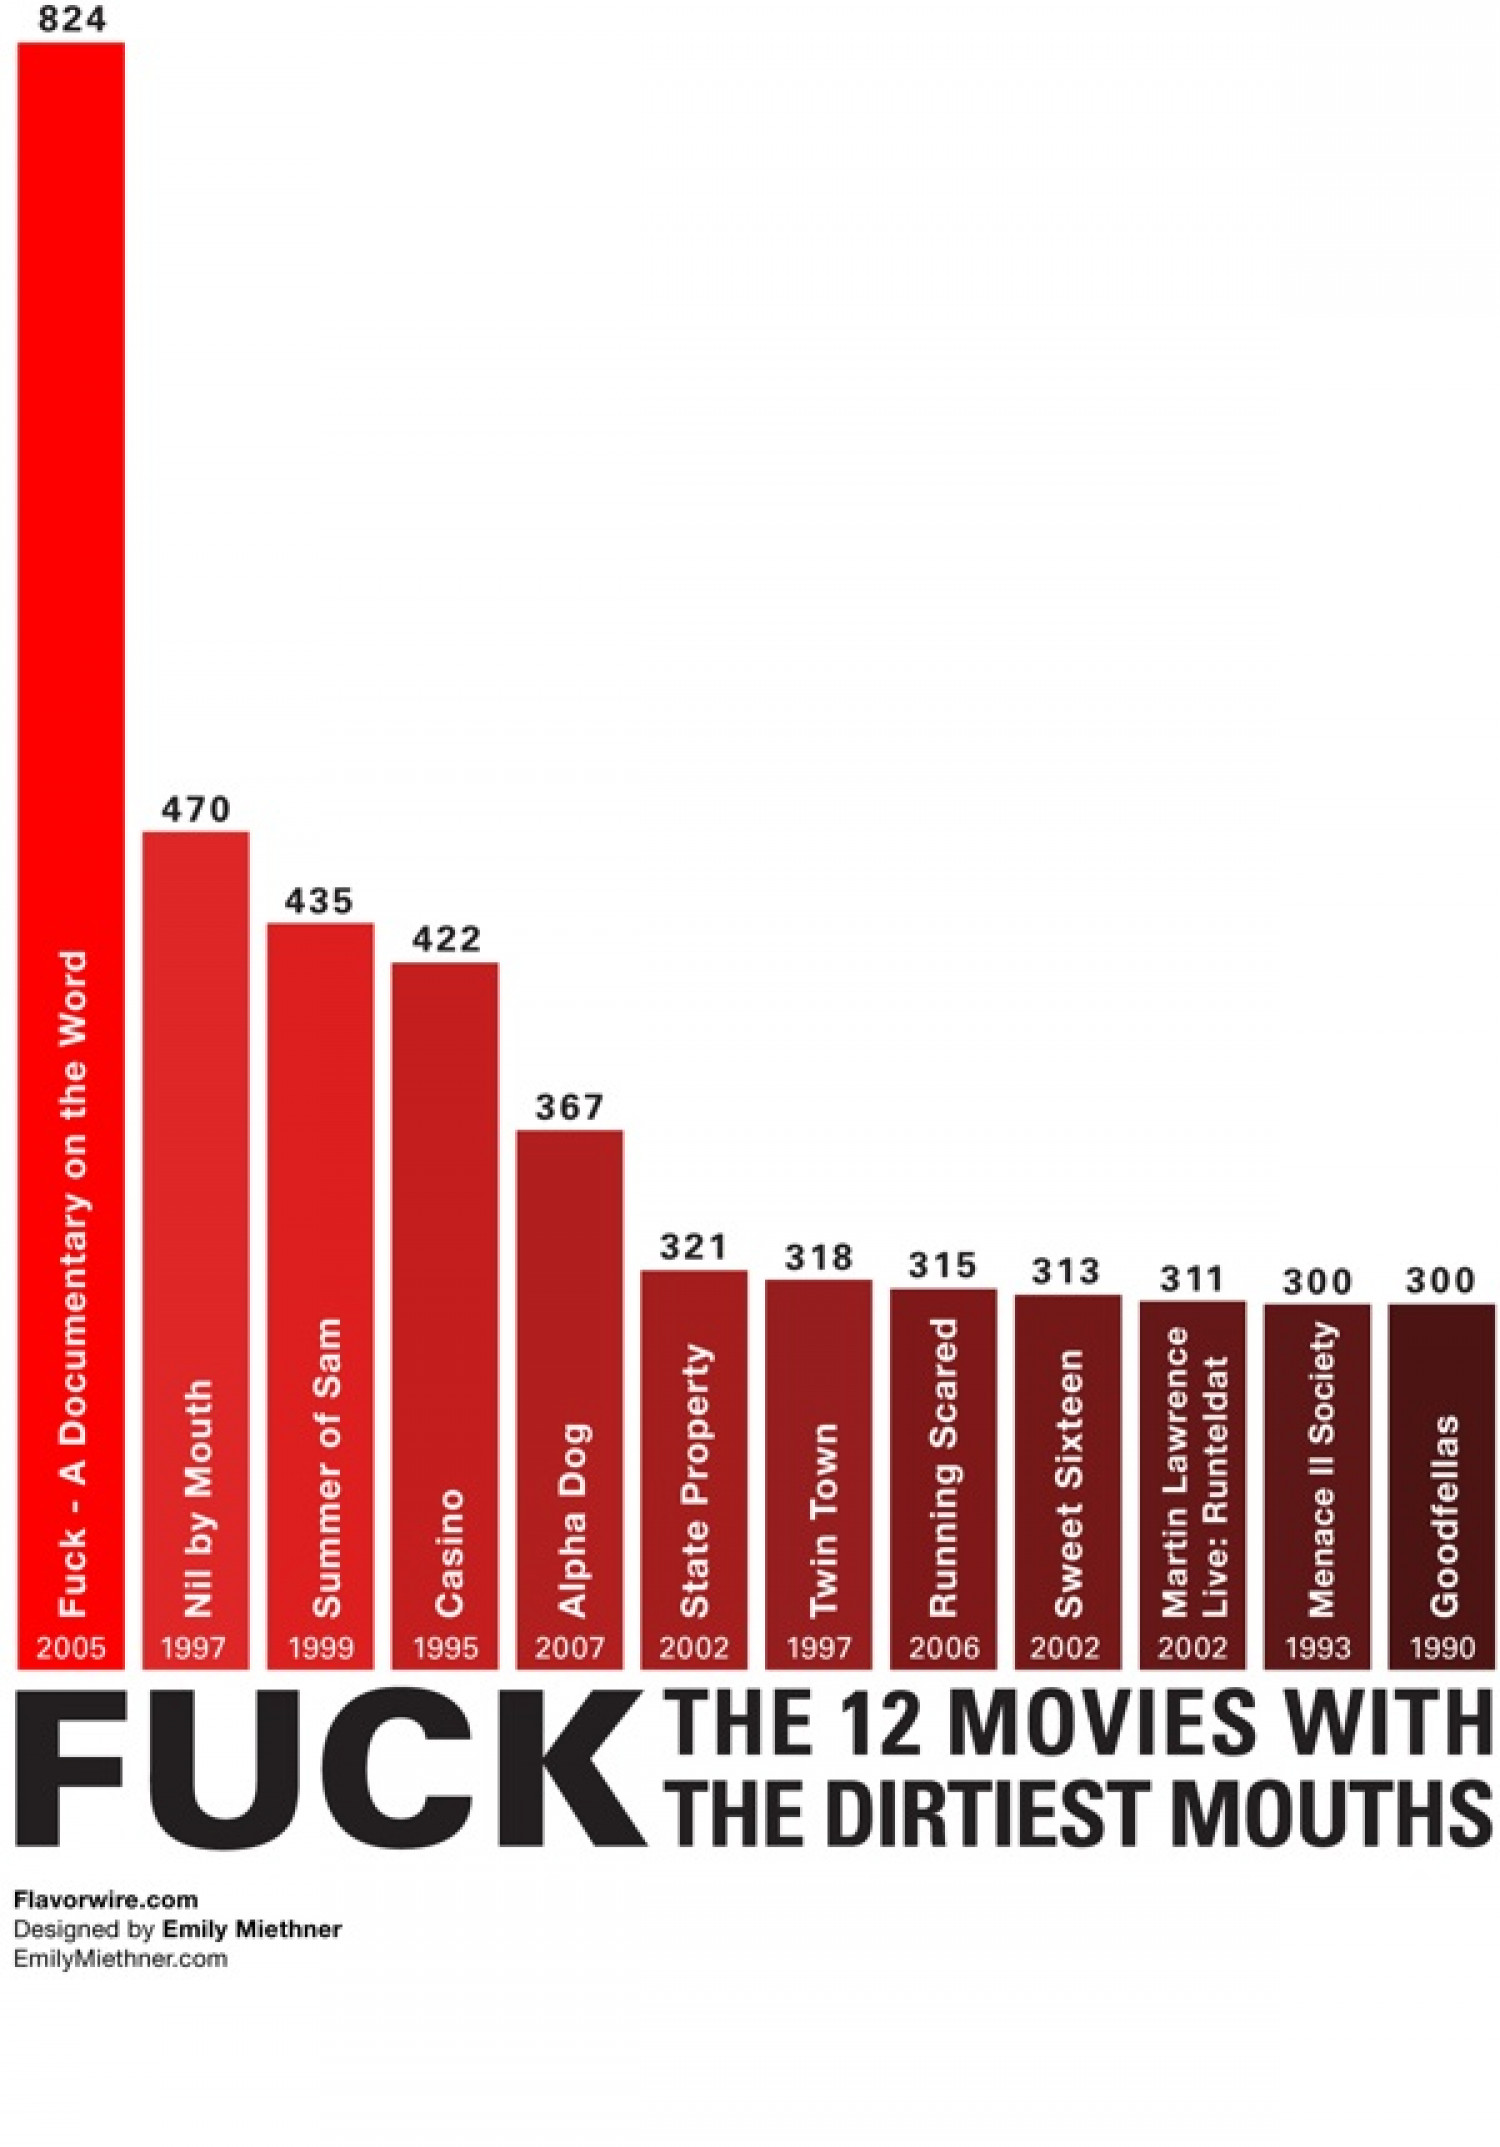 The 12 Movies with the Dirtiest Mouths Infographic